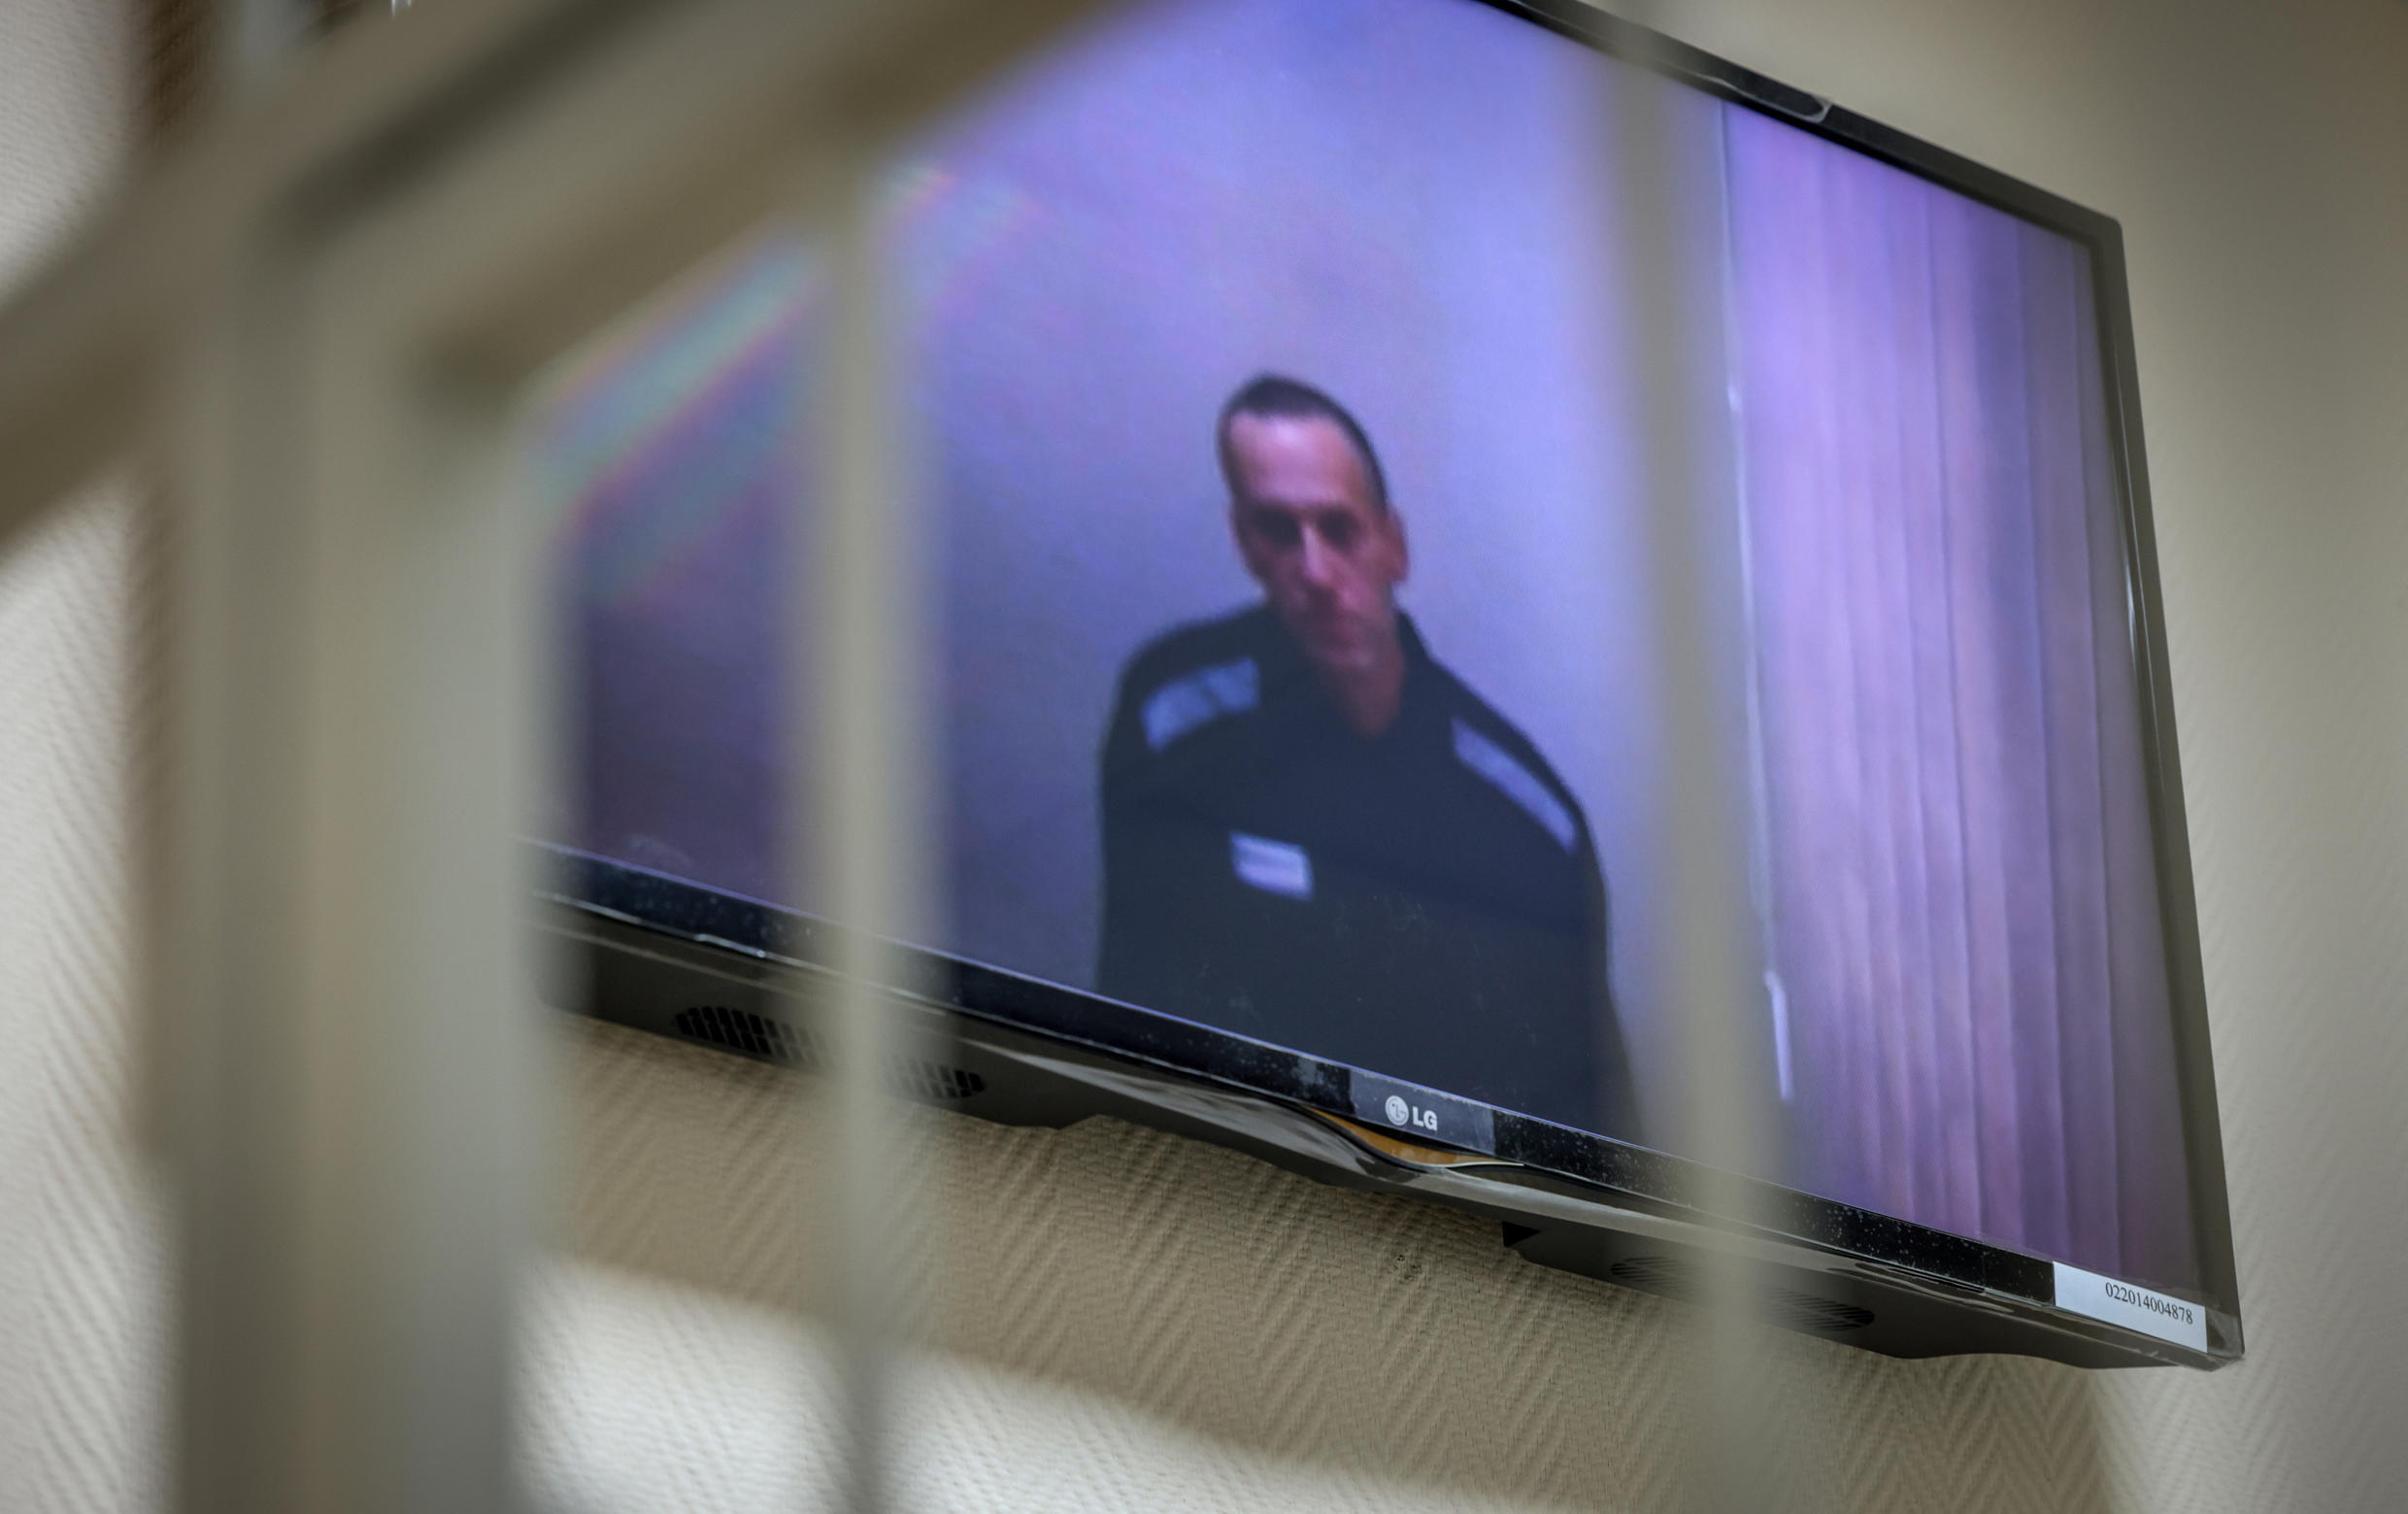 Navalny was jailed in February on old fraud charges he says are politically motivated